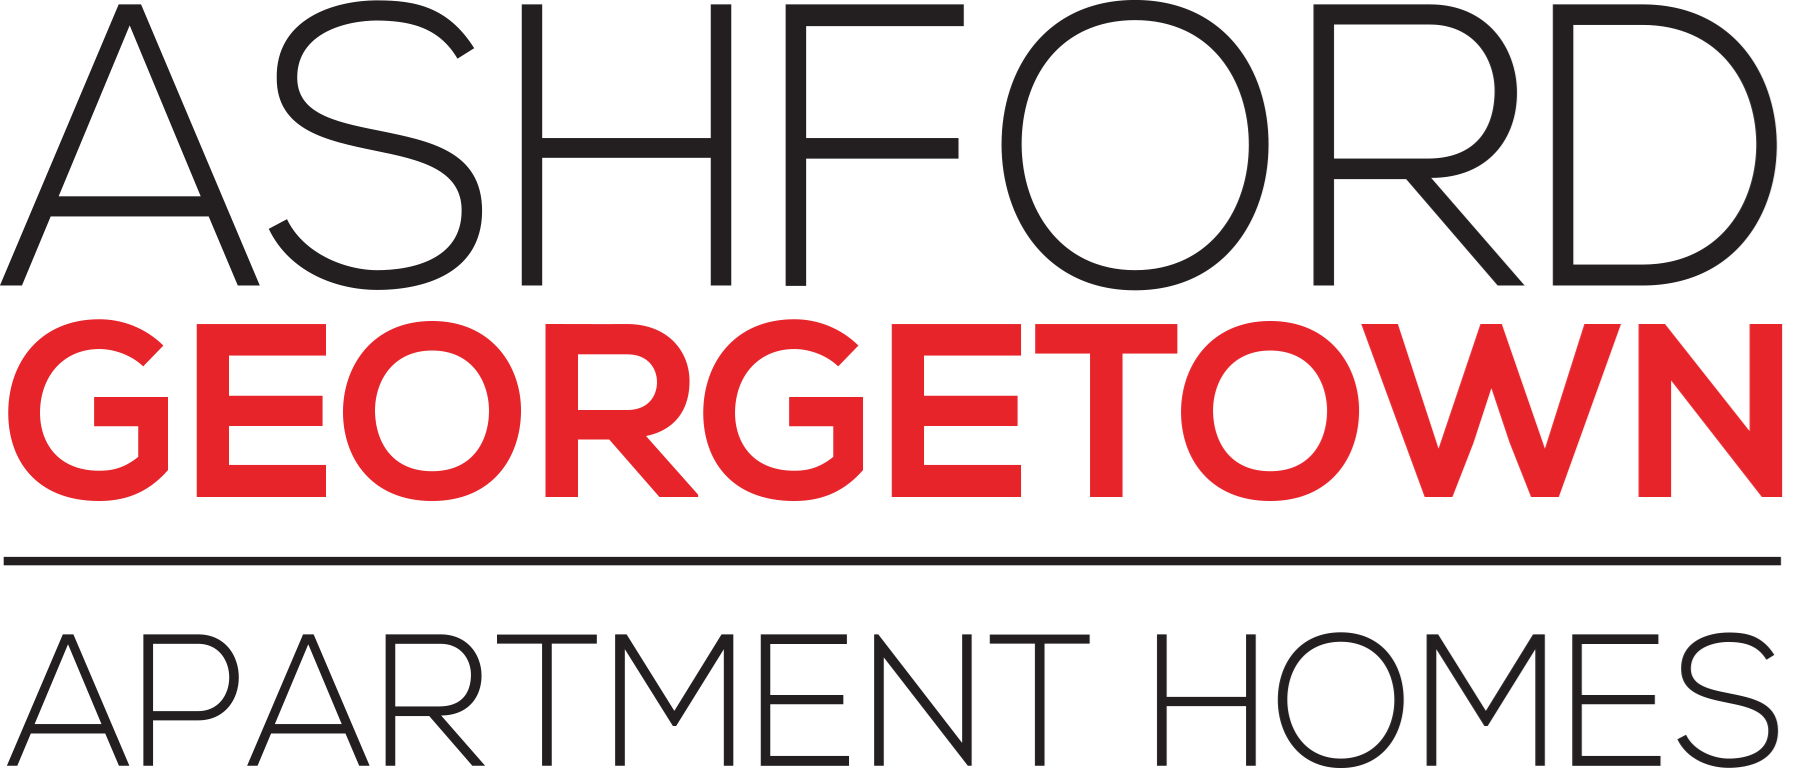 Ashford Georgetown | Apartments in Indianapolis, IN